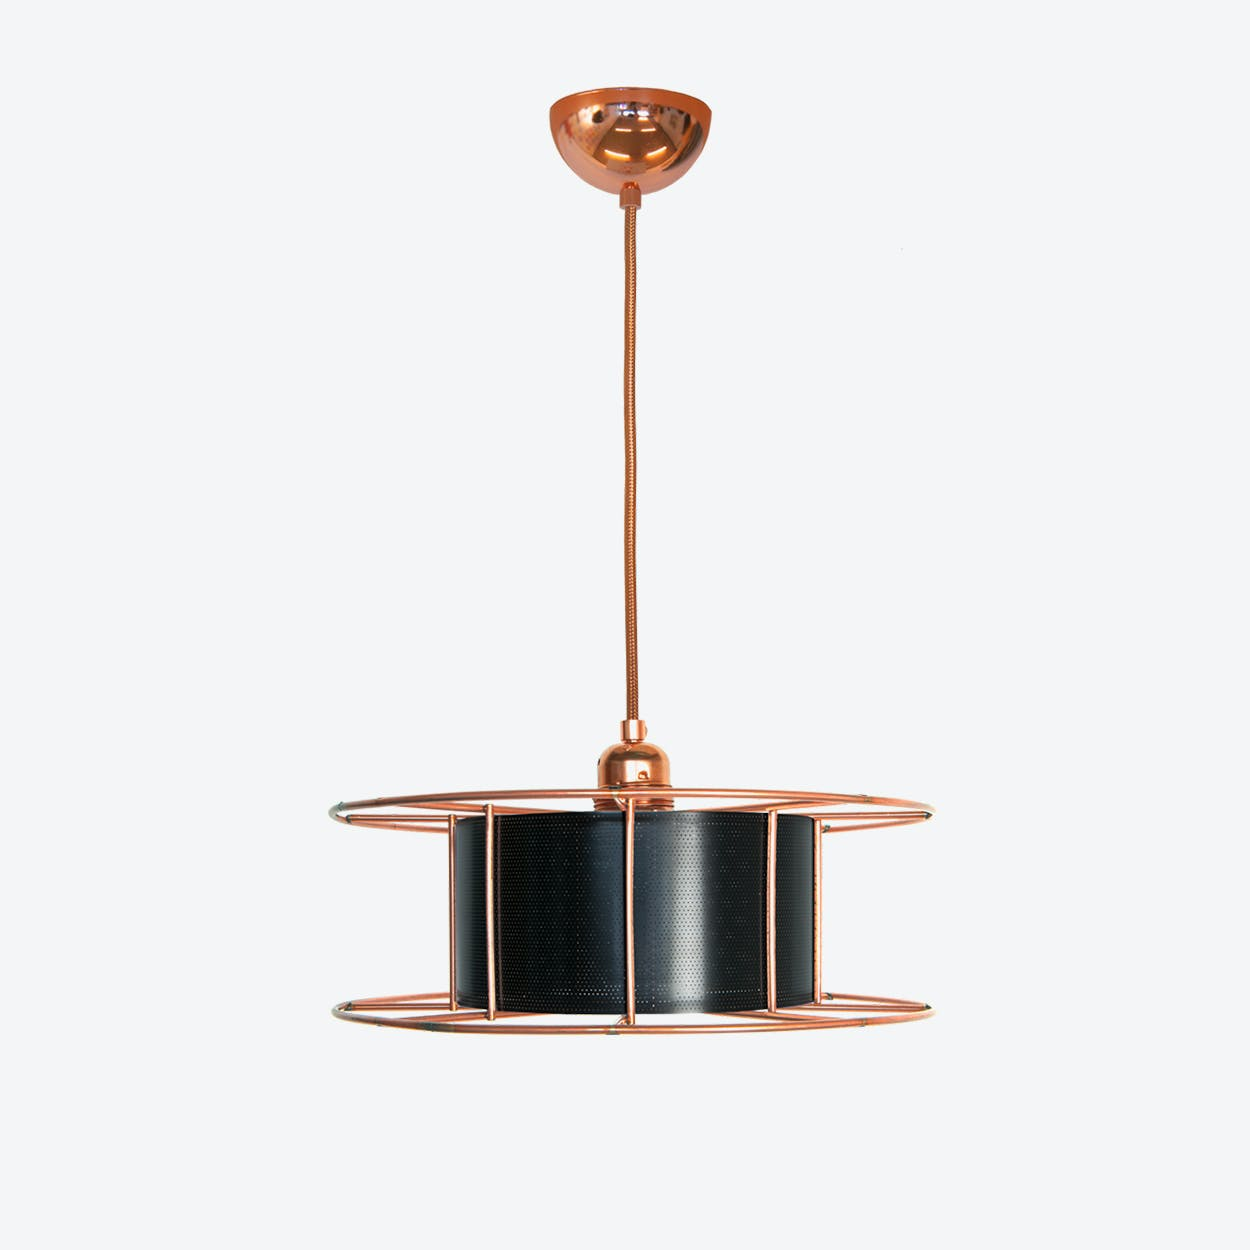 Spool Basic Pendant Light in Black